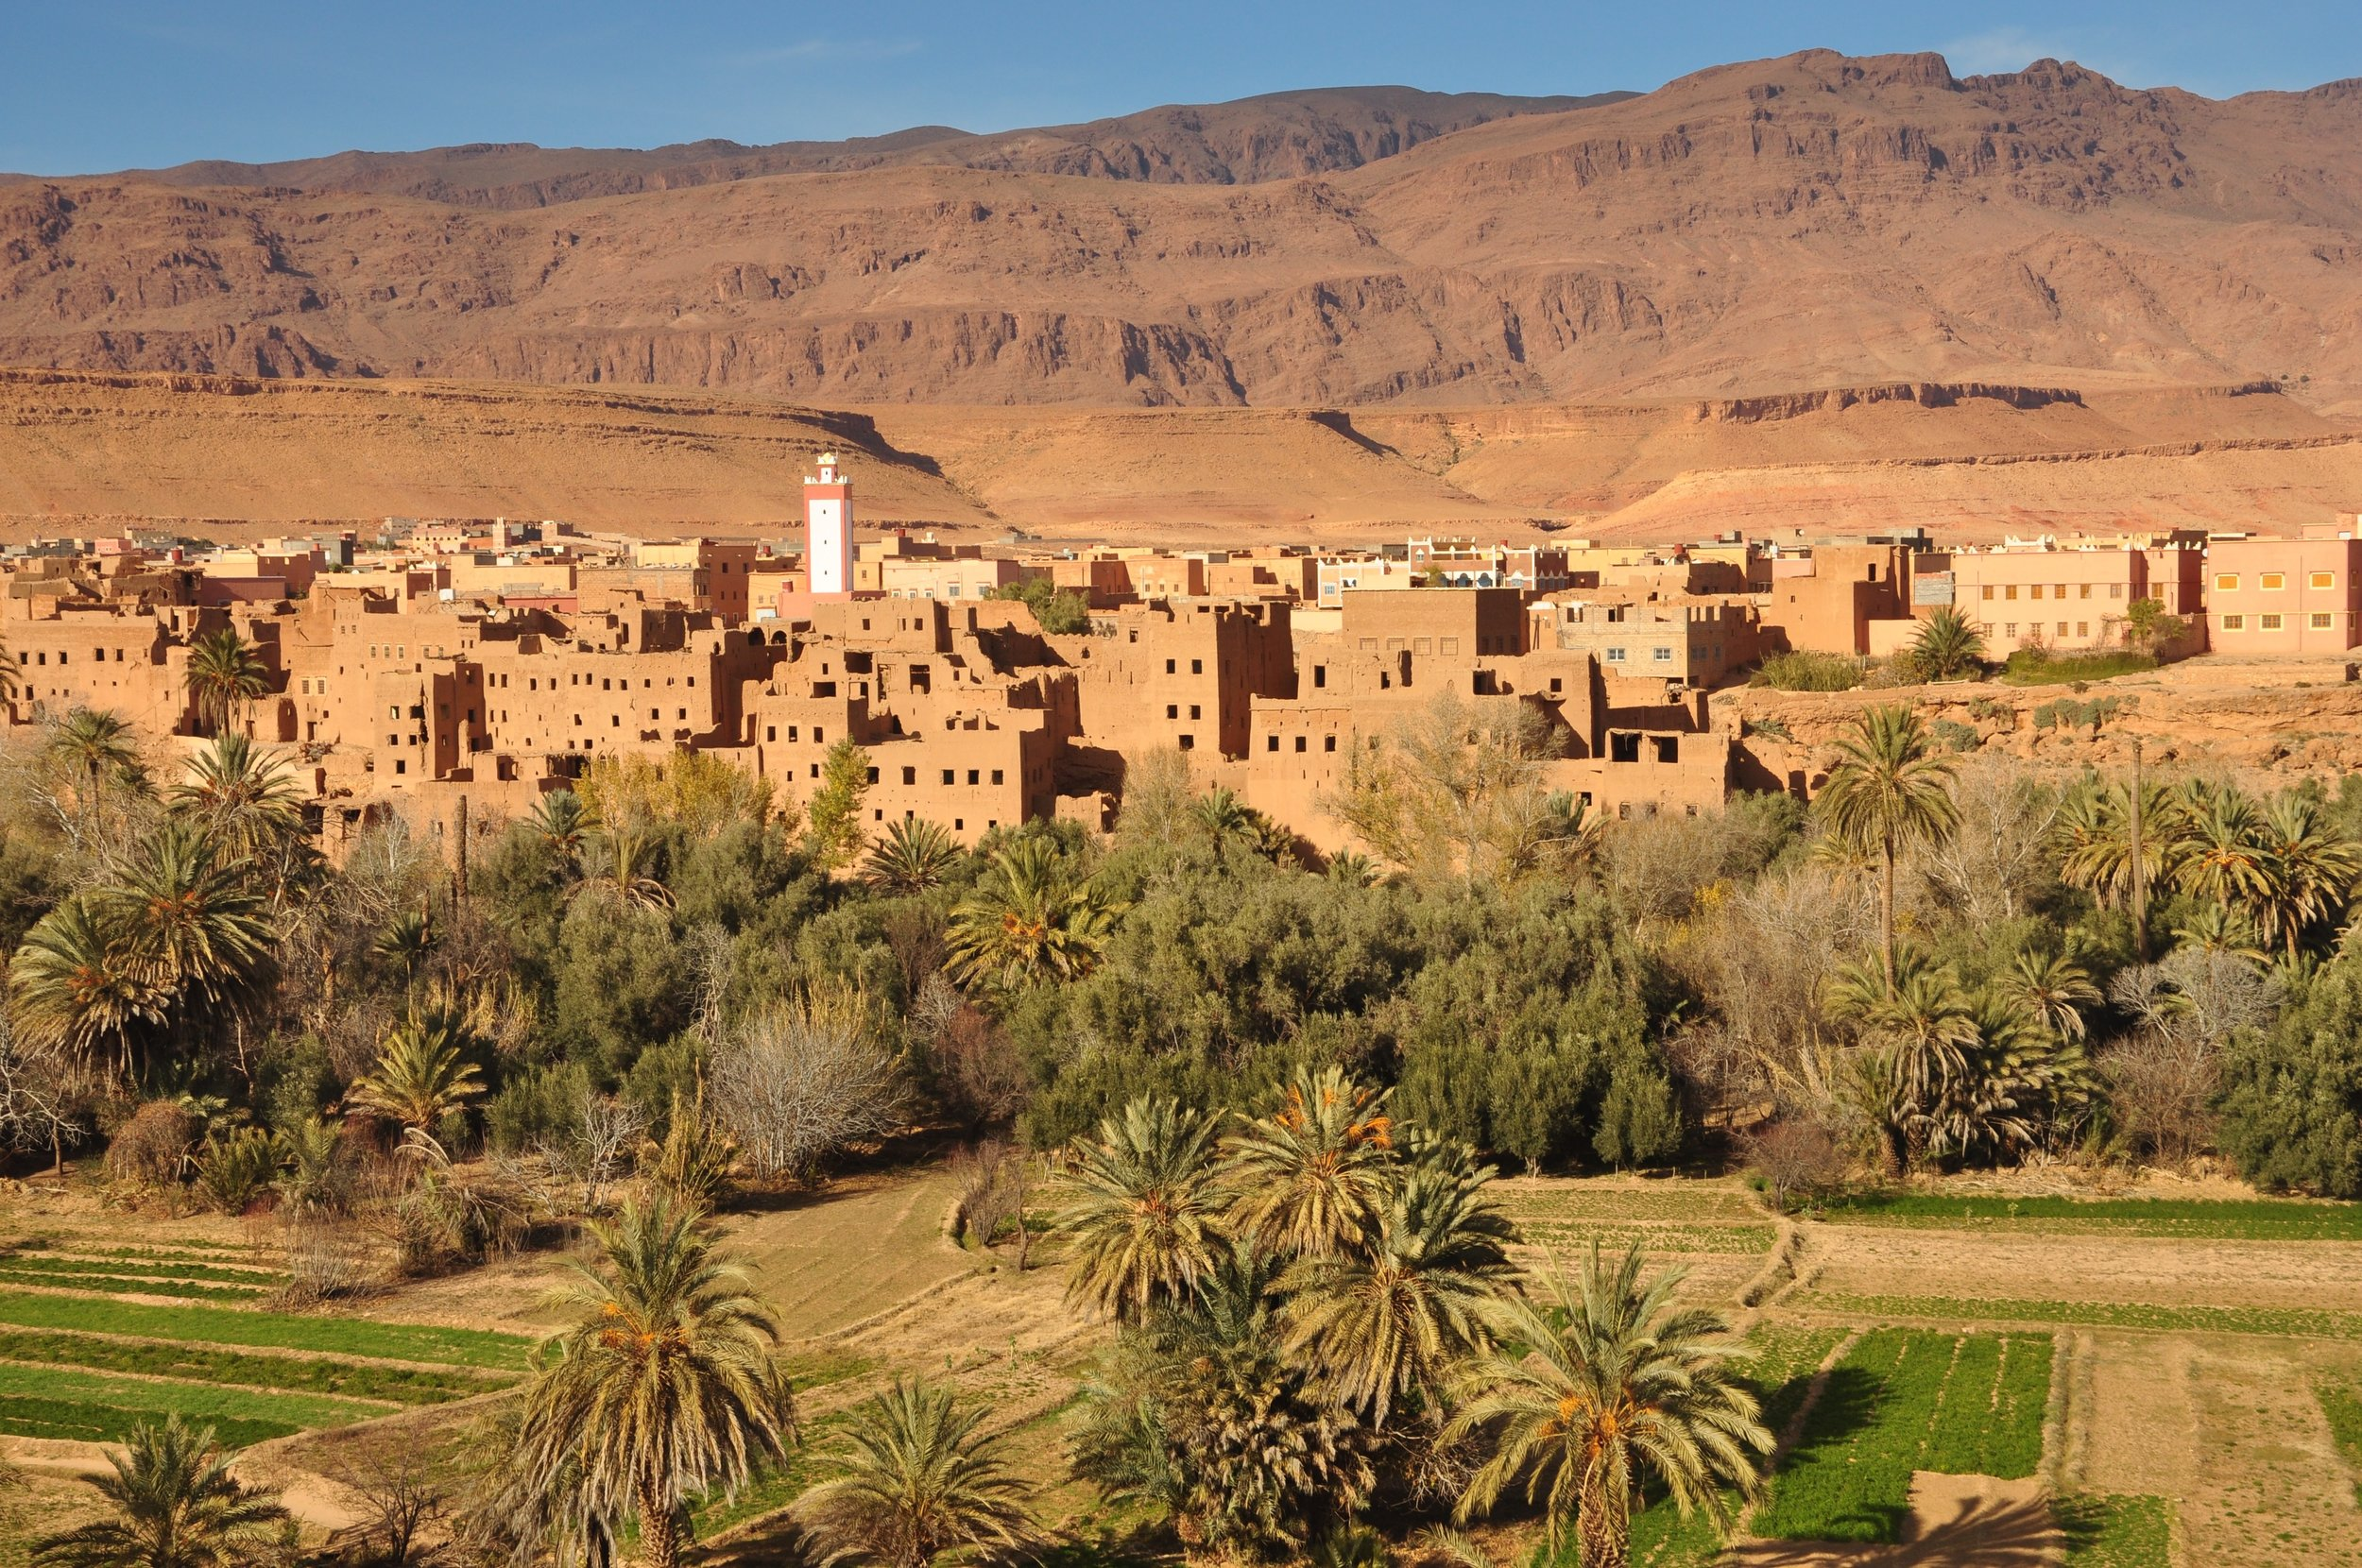 The Dades oasis.